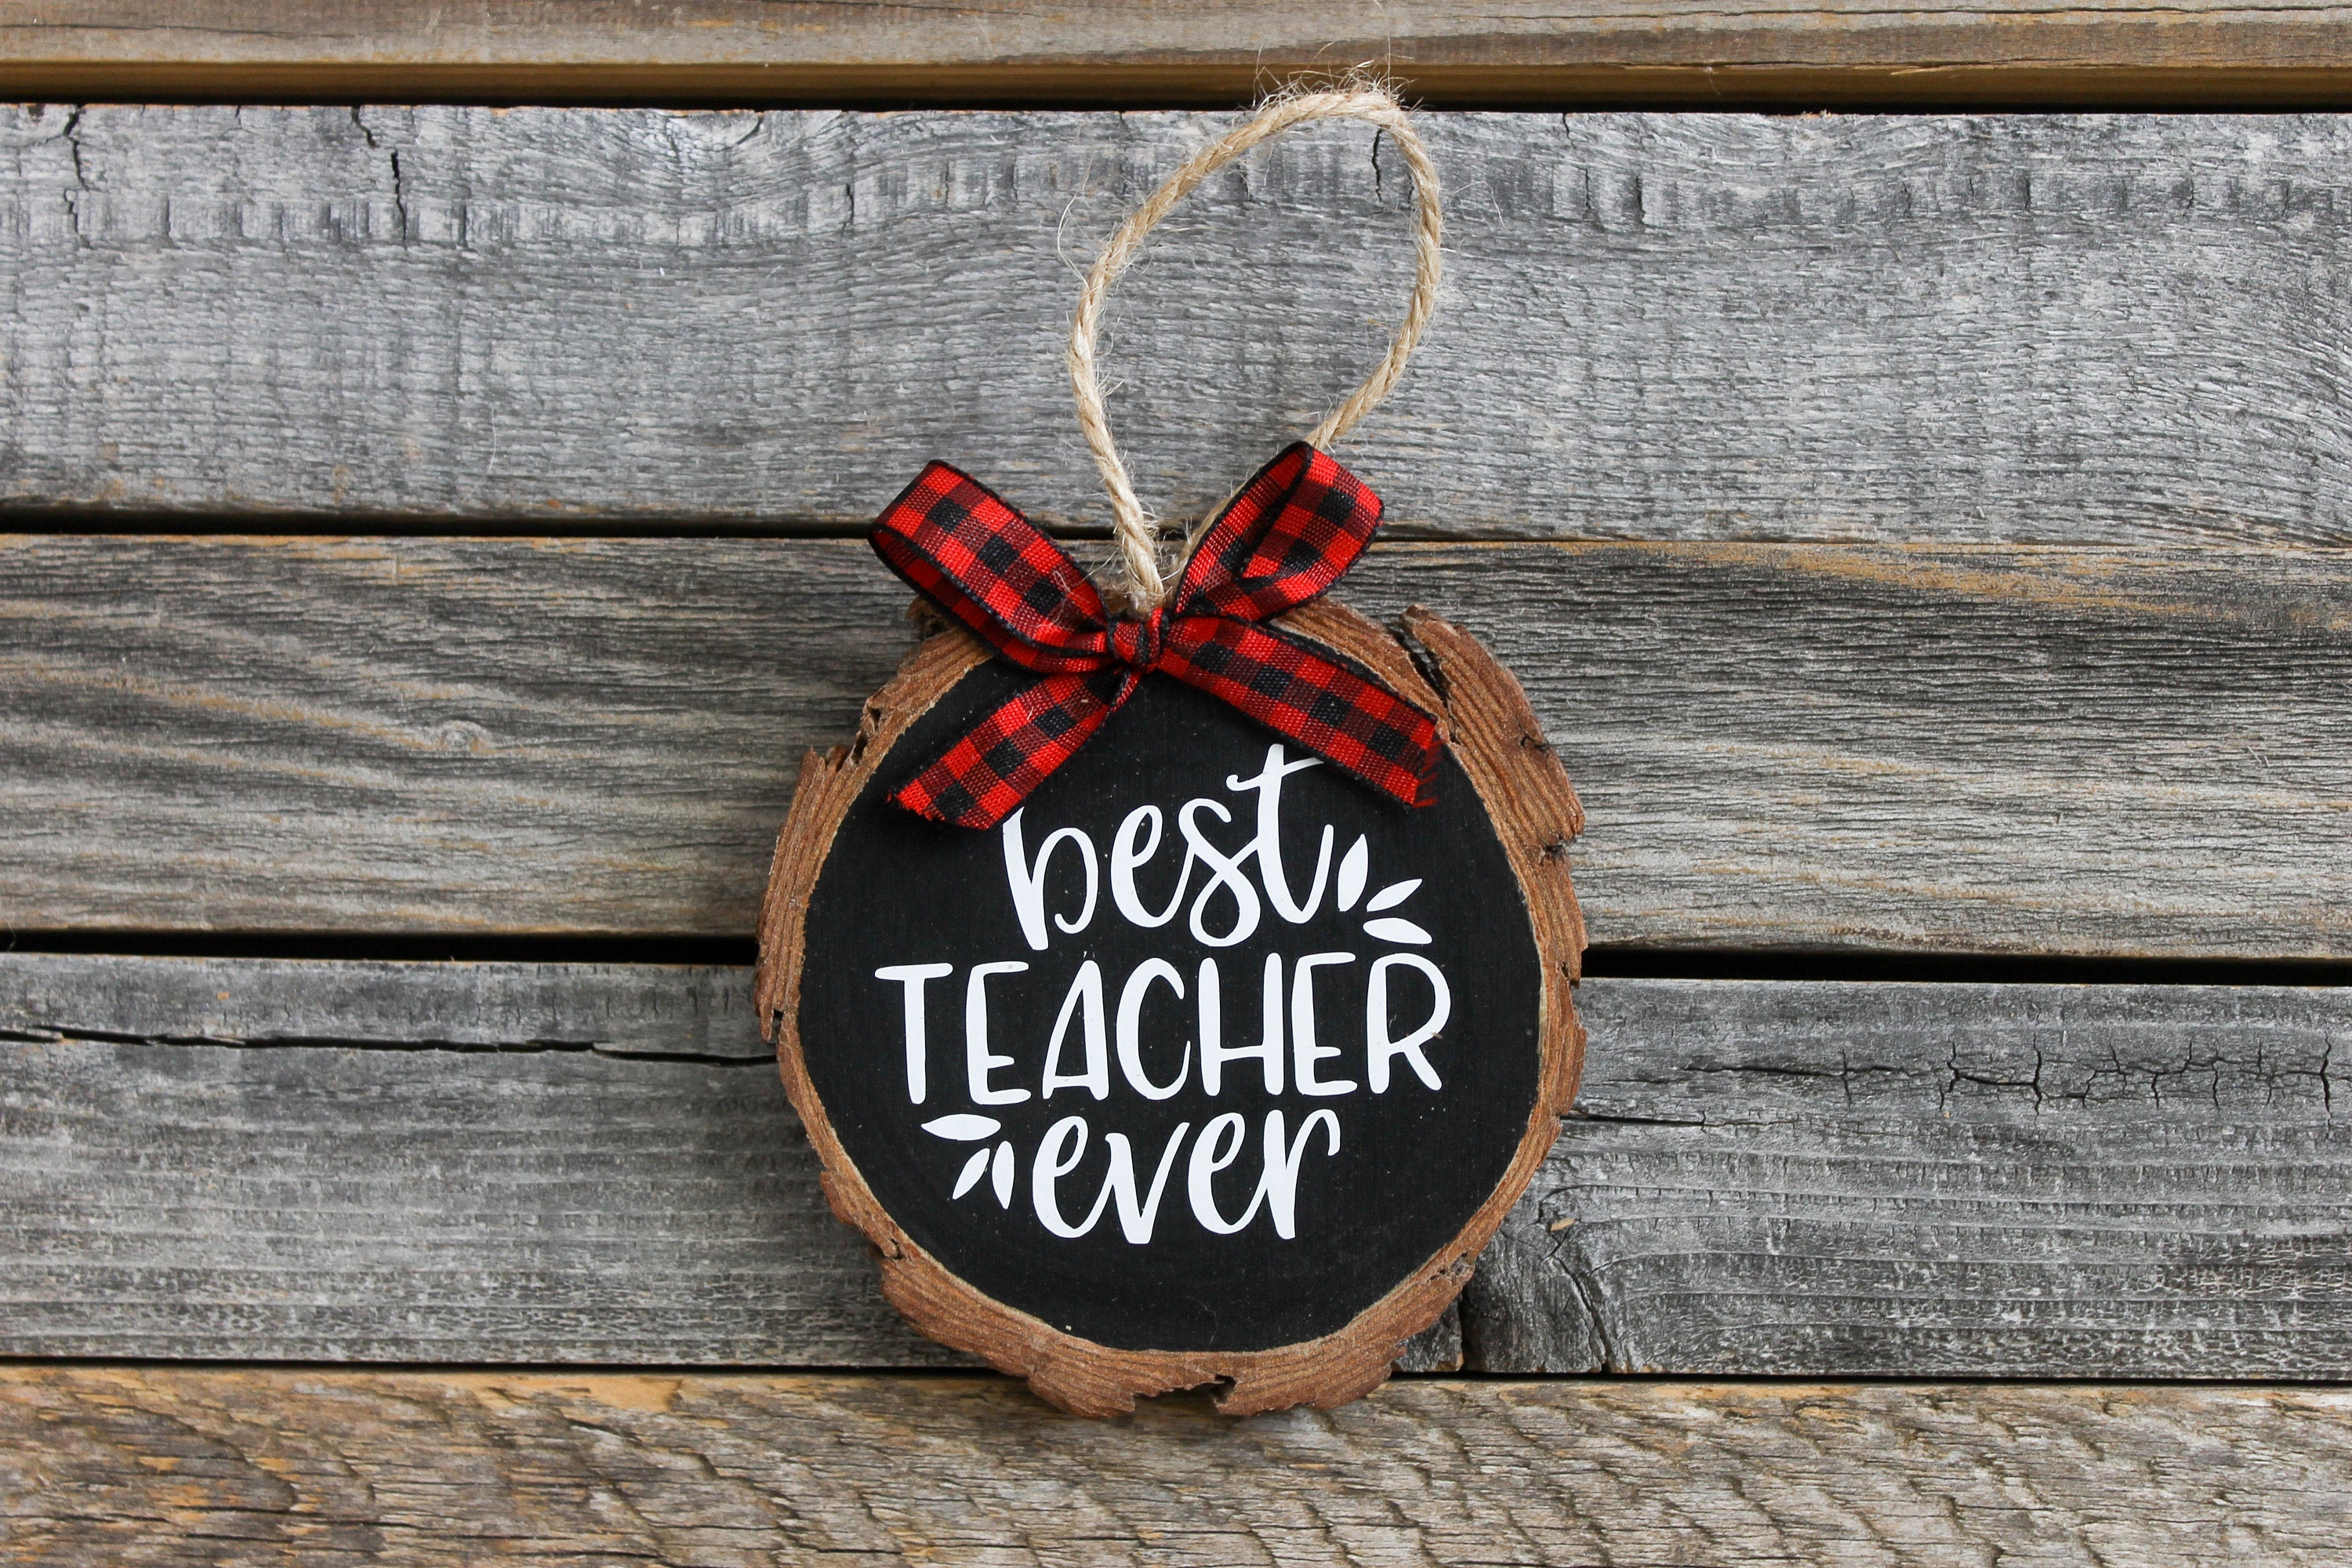 Best Teacher Ever Wood Slice Christmas Ornament| New Home Ornament| Housewarming Gift| Christmas Gift| Various Colors| Rustic Christmas